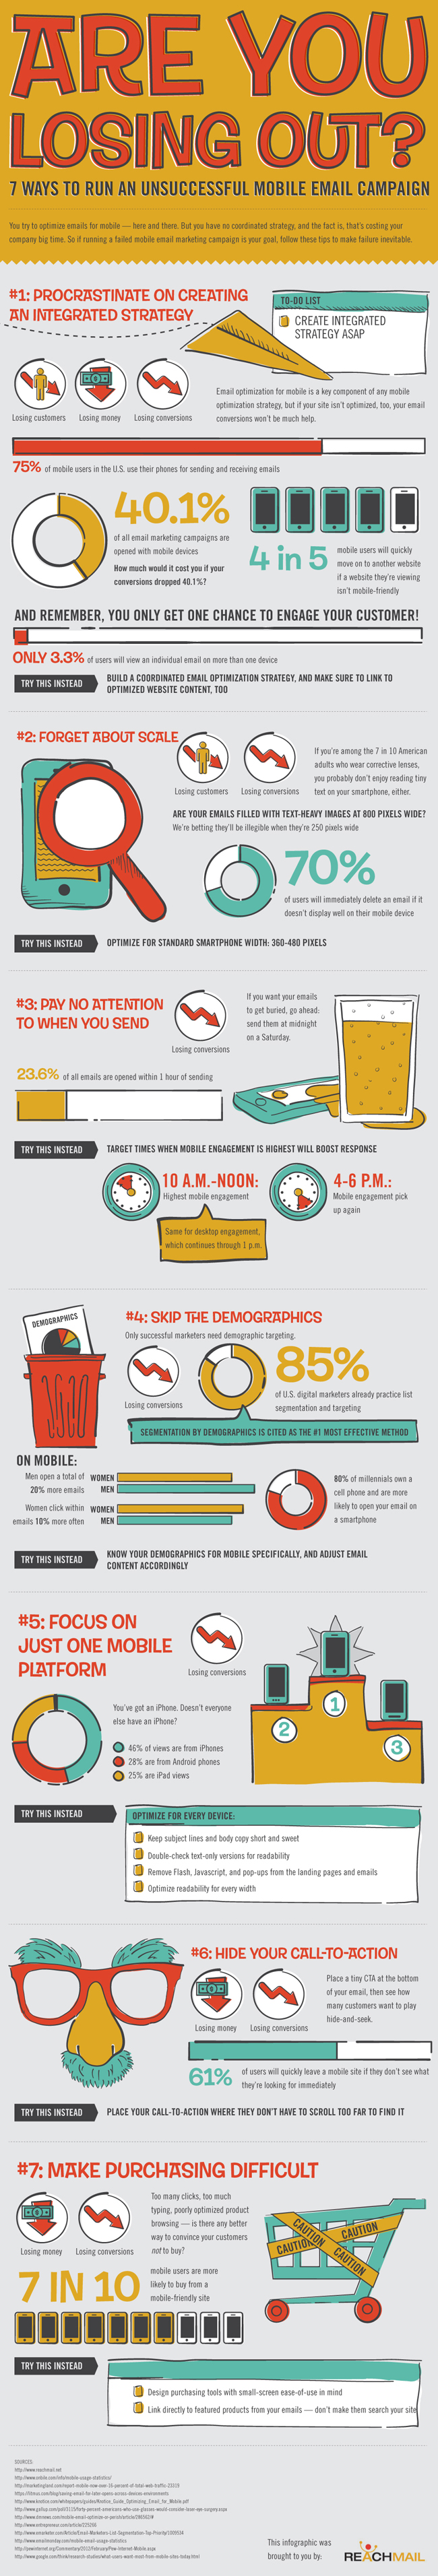 Reachmail Infographic